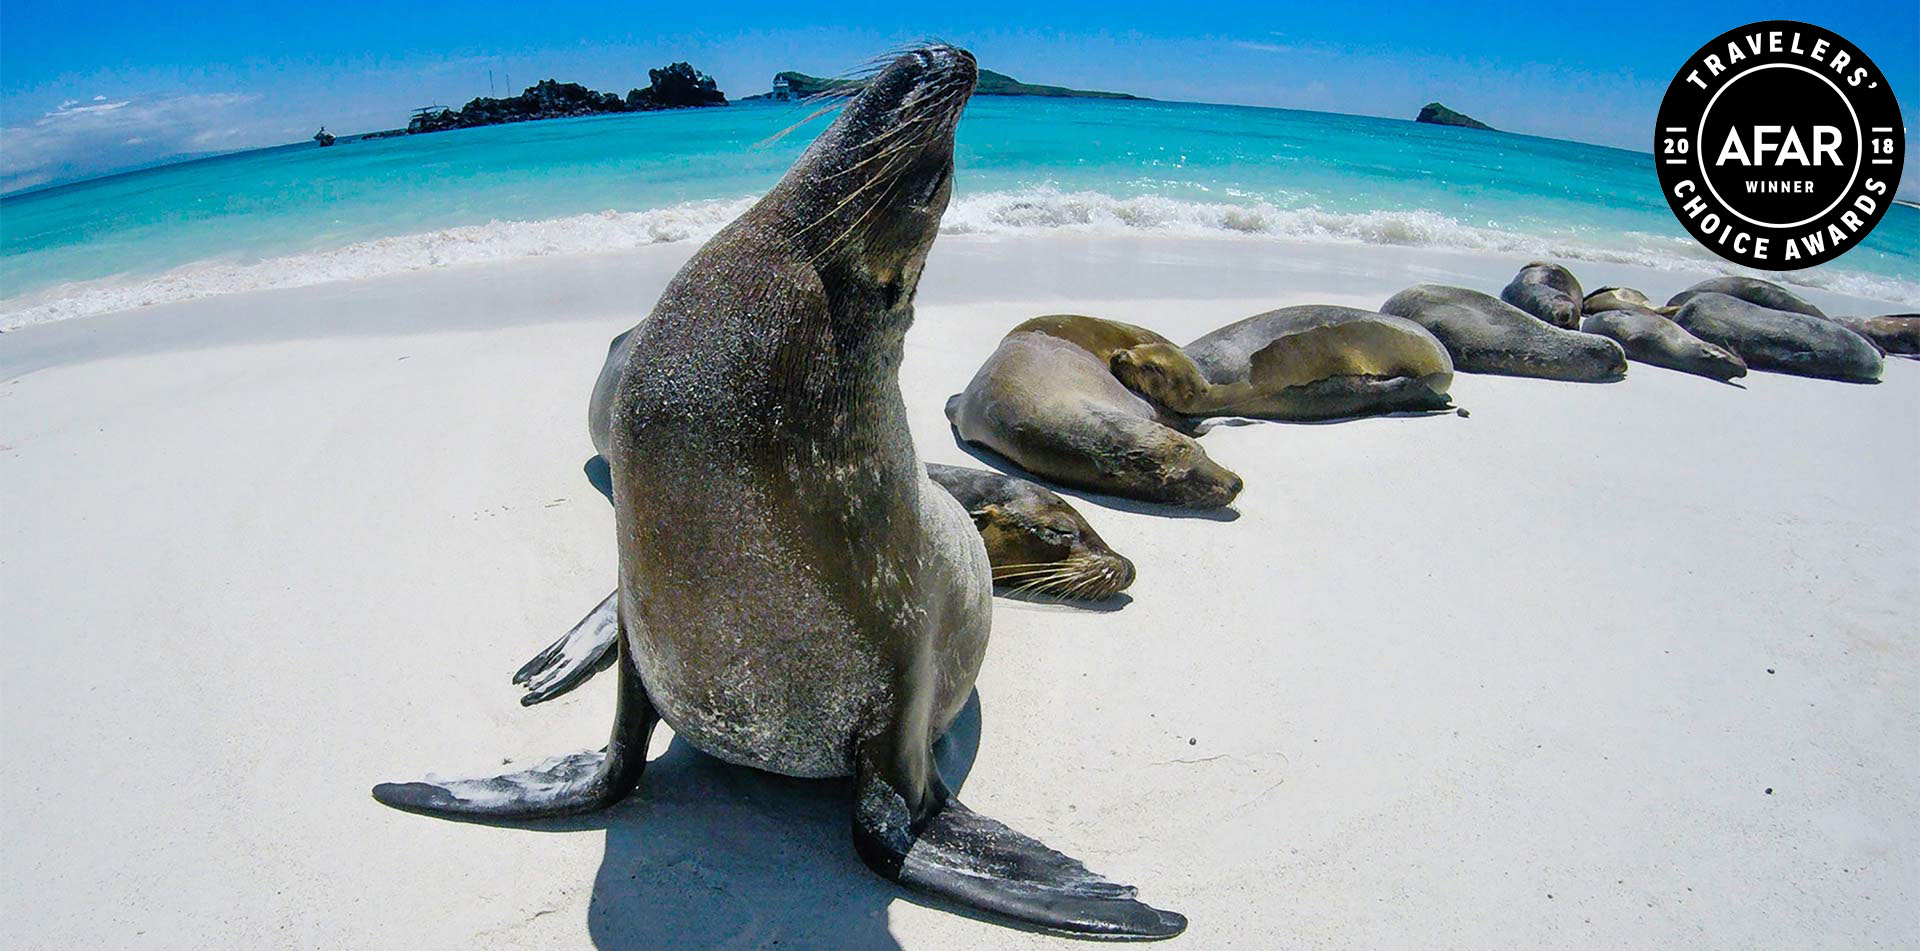 Sealions on a Beach in the Galapagos Islands